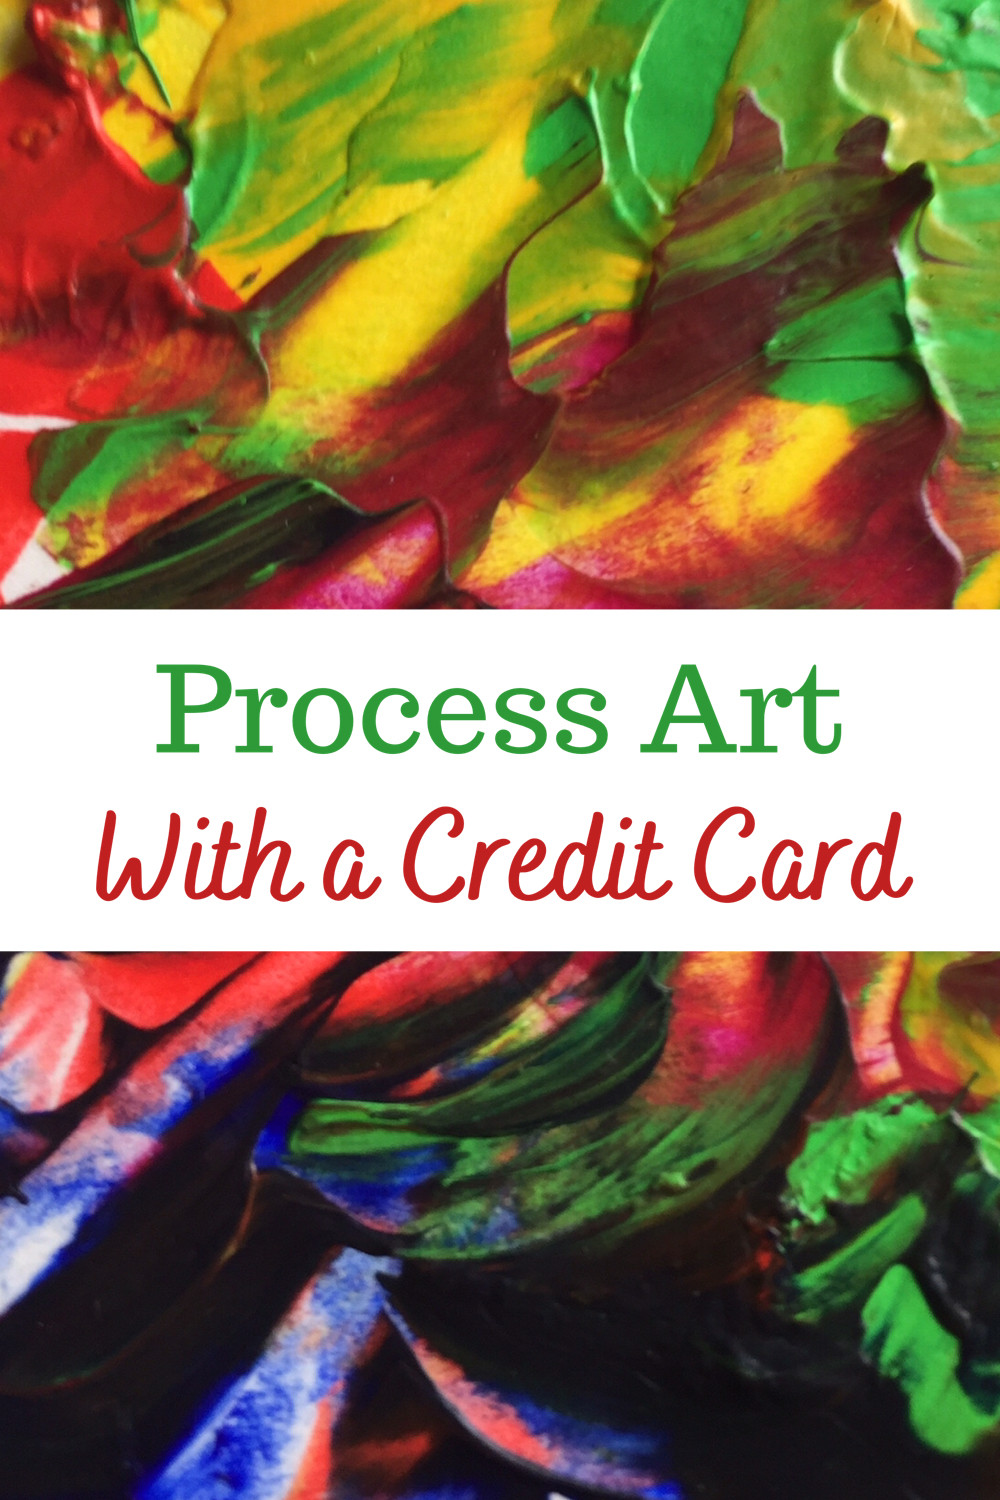 Process art with a credit card